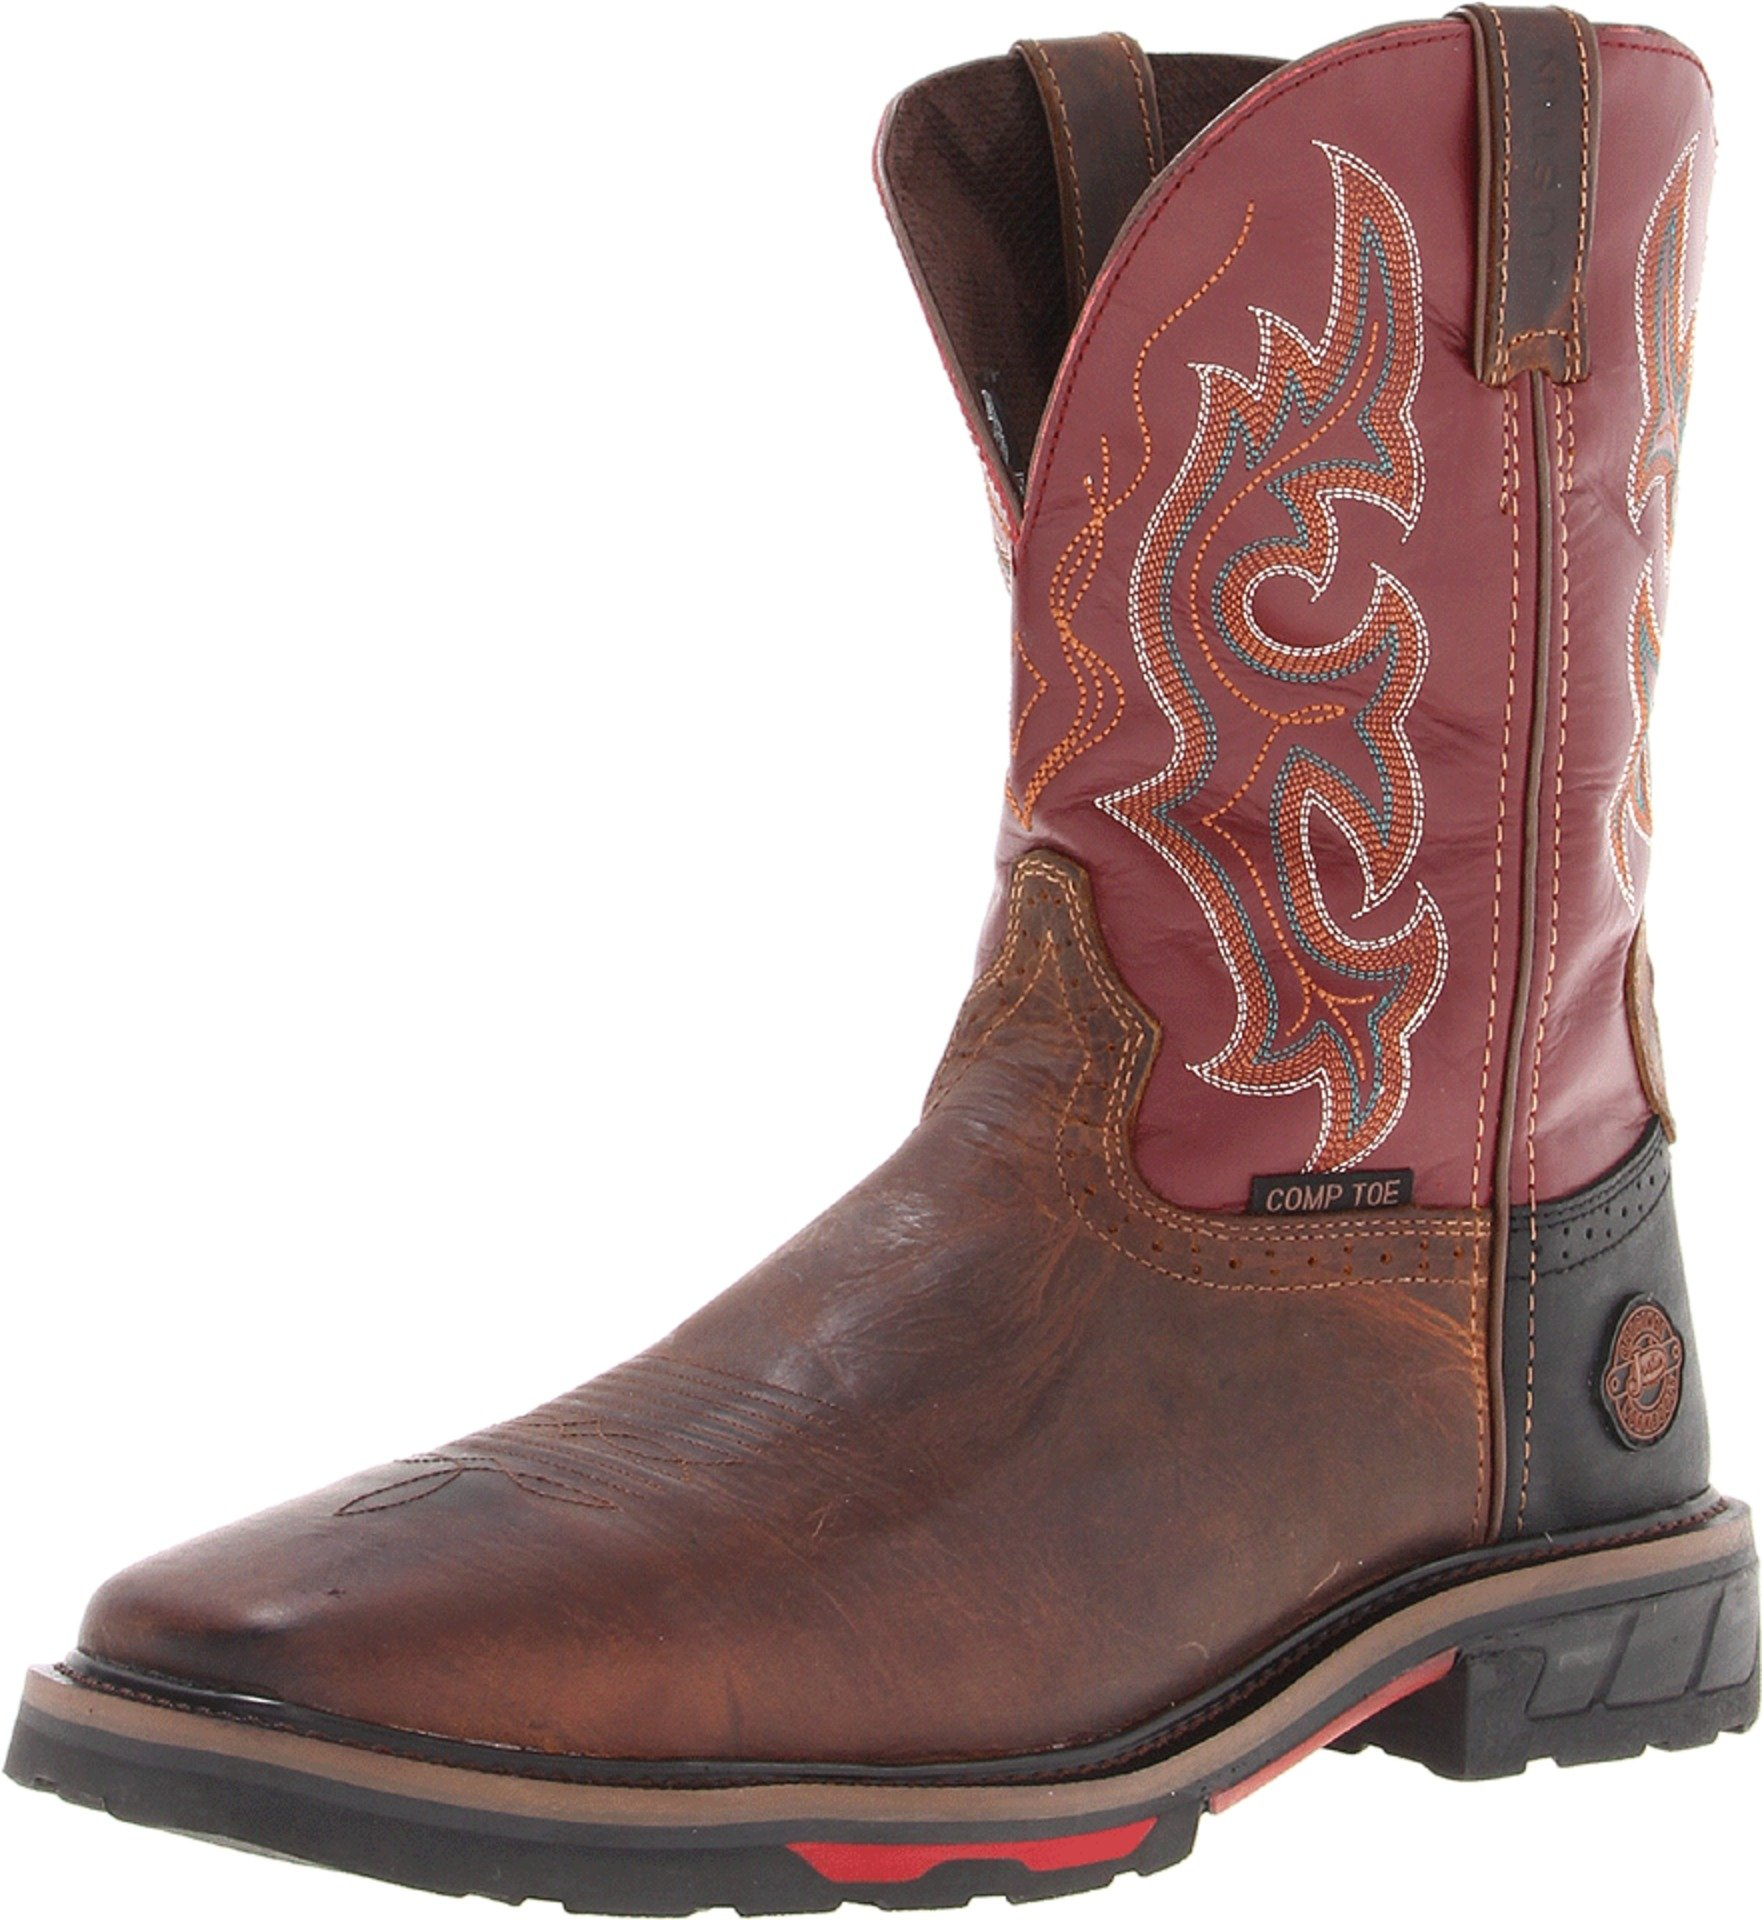 Justin Original Work Boots Men's Hybred Comp Toe Work Boot,Rugged Utah/Red Oiled,9 D US